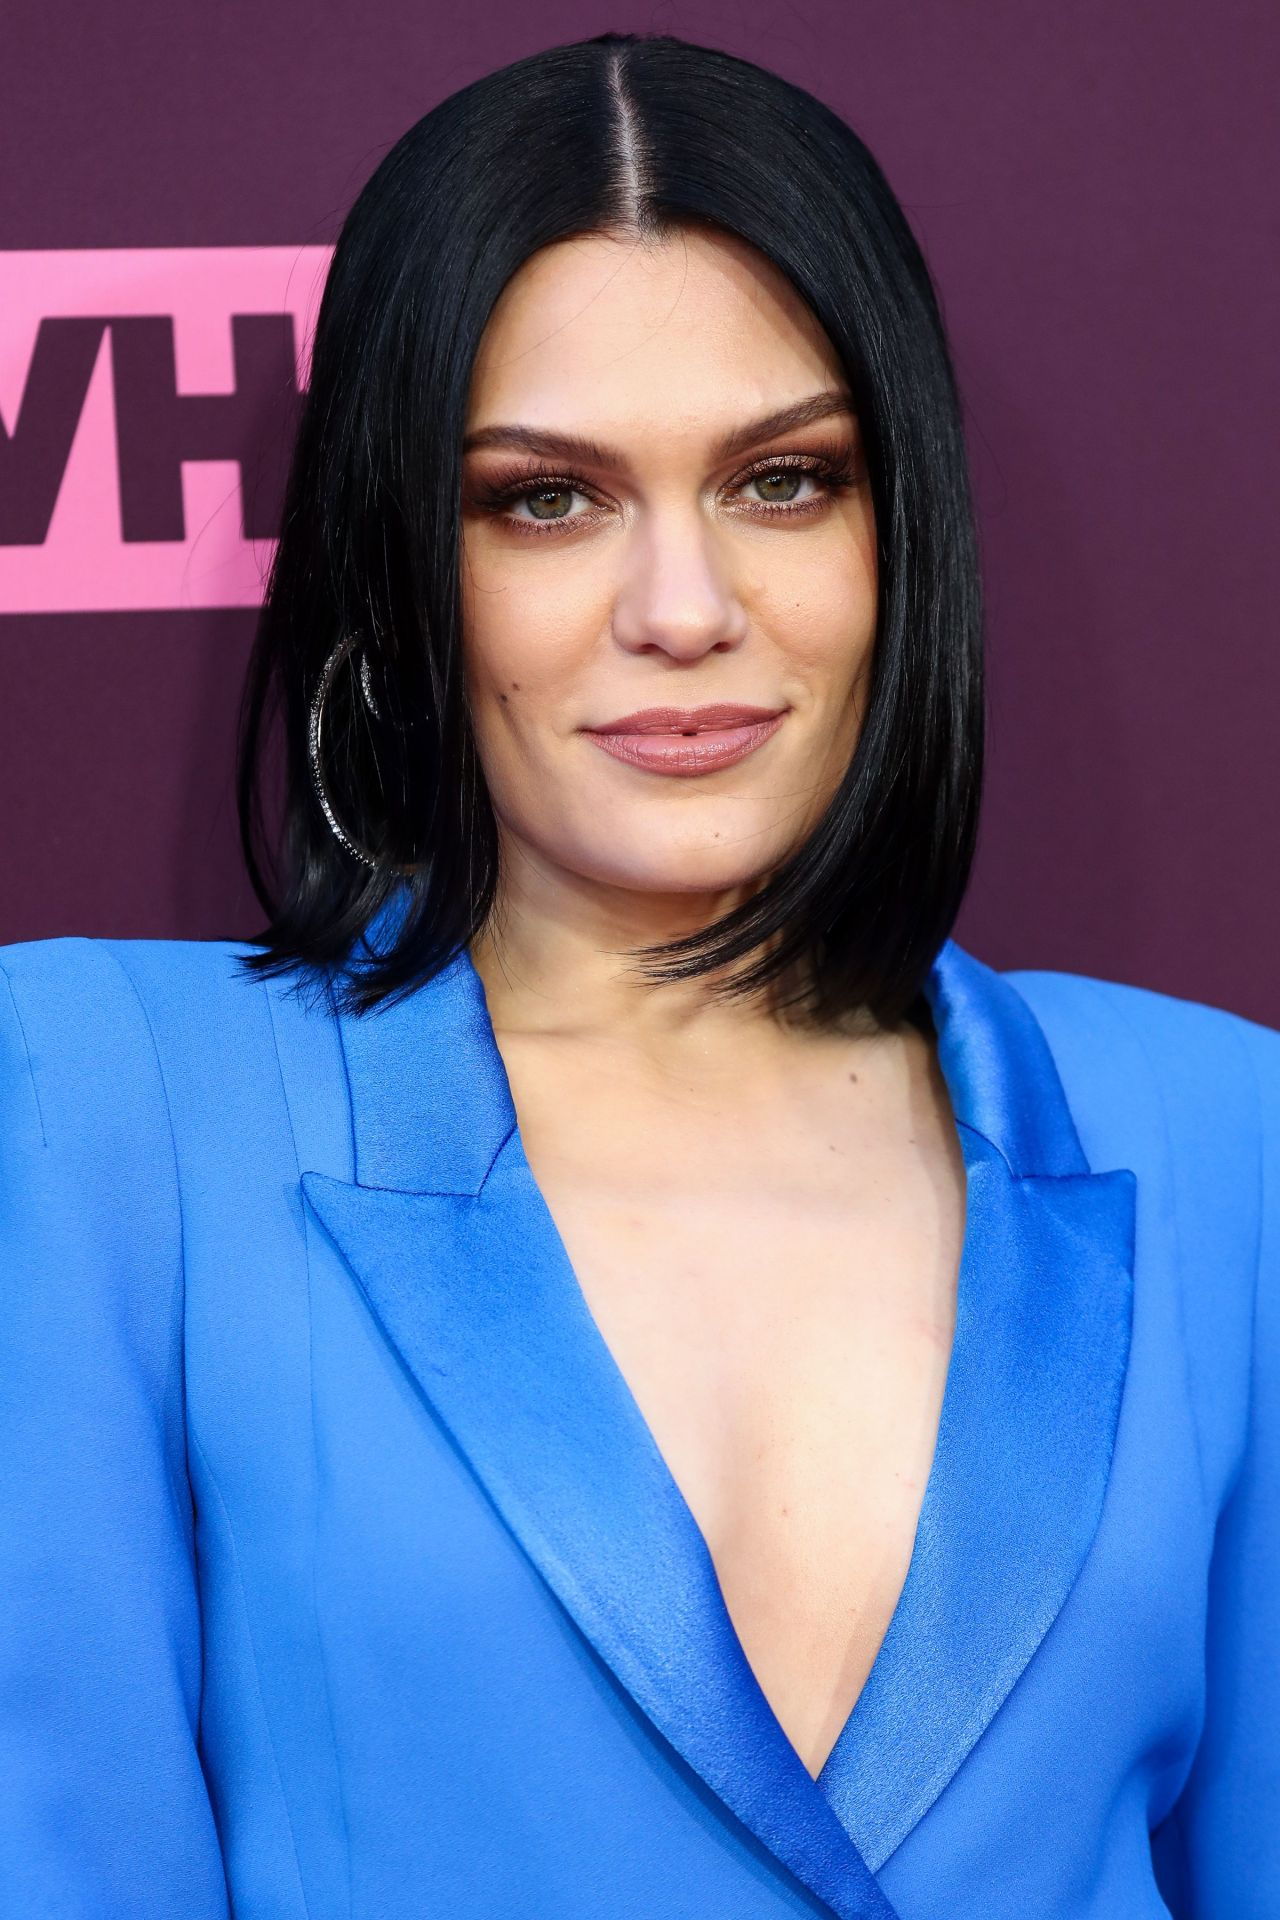 Jessie J Quot Dear Mama An Event To Honor Moms Quot In La 05 03 2018